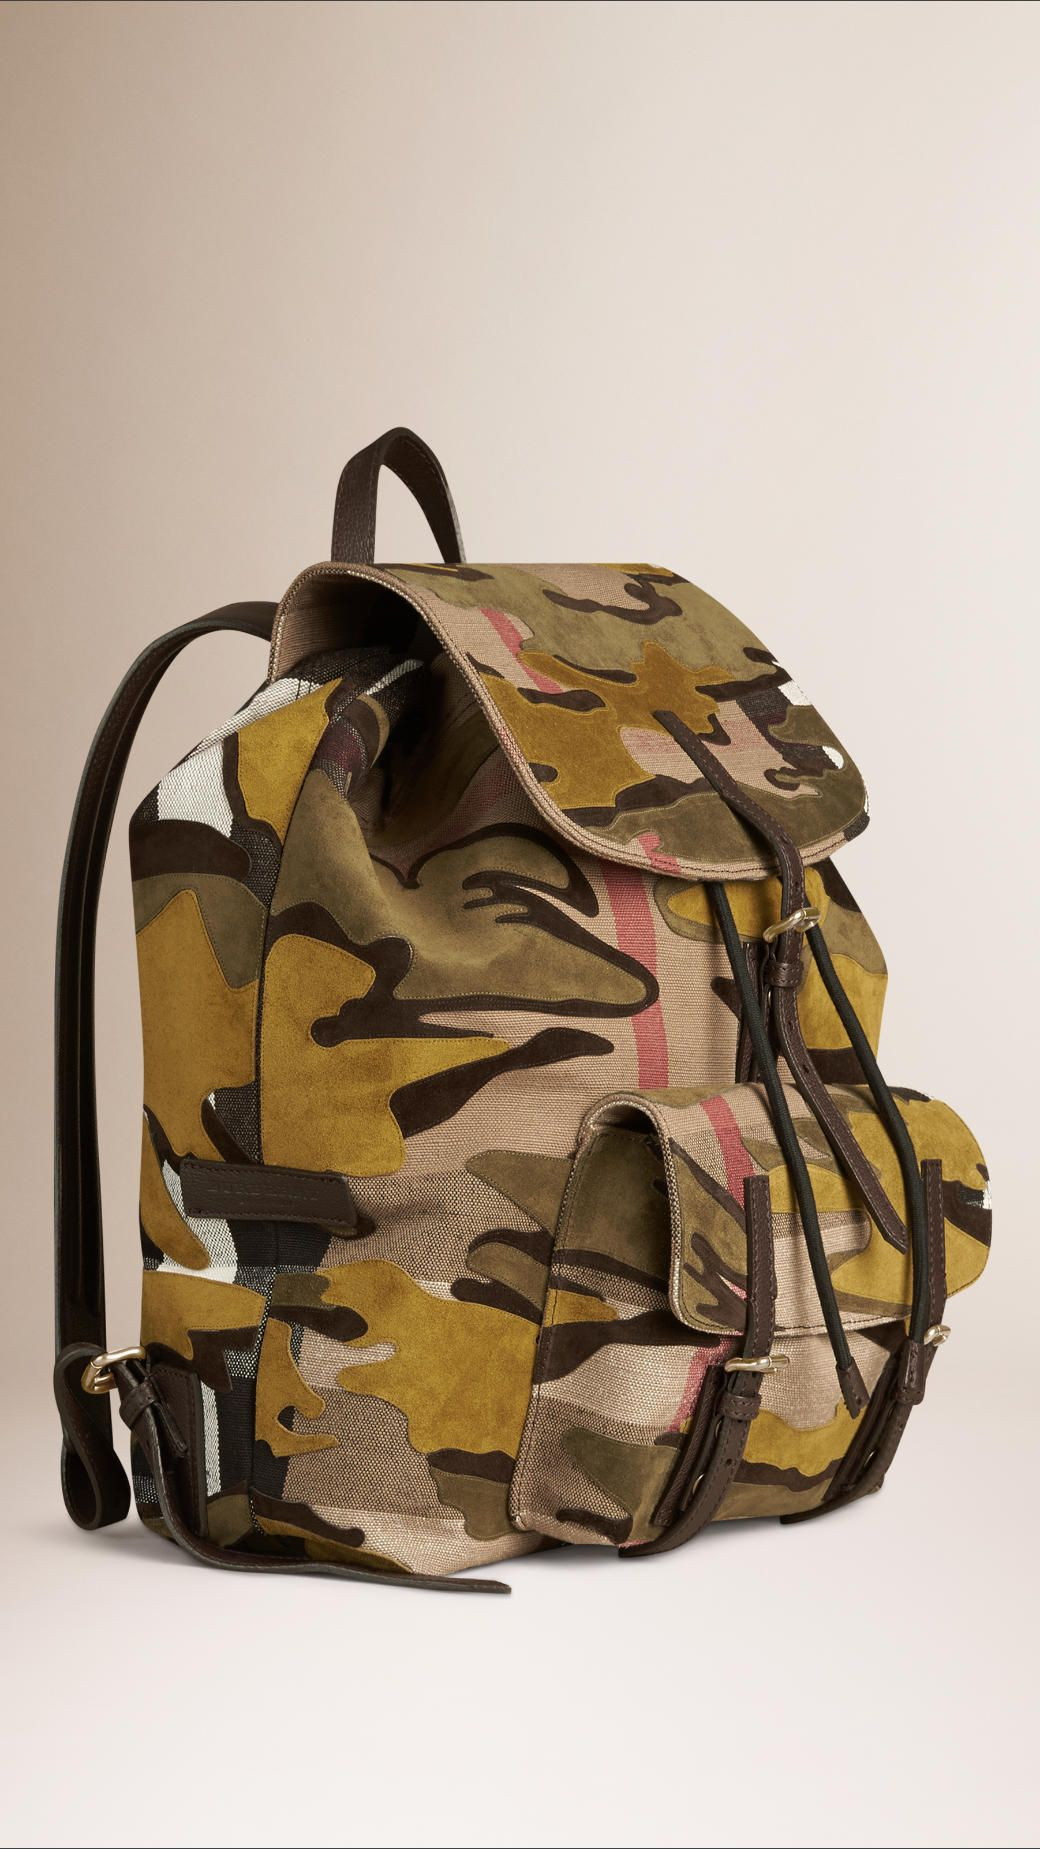 b6628c033ee8 Burberry   An Italian-made Canvas check backpack featuring a bonded suede  camouflage pattern.